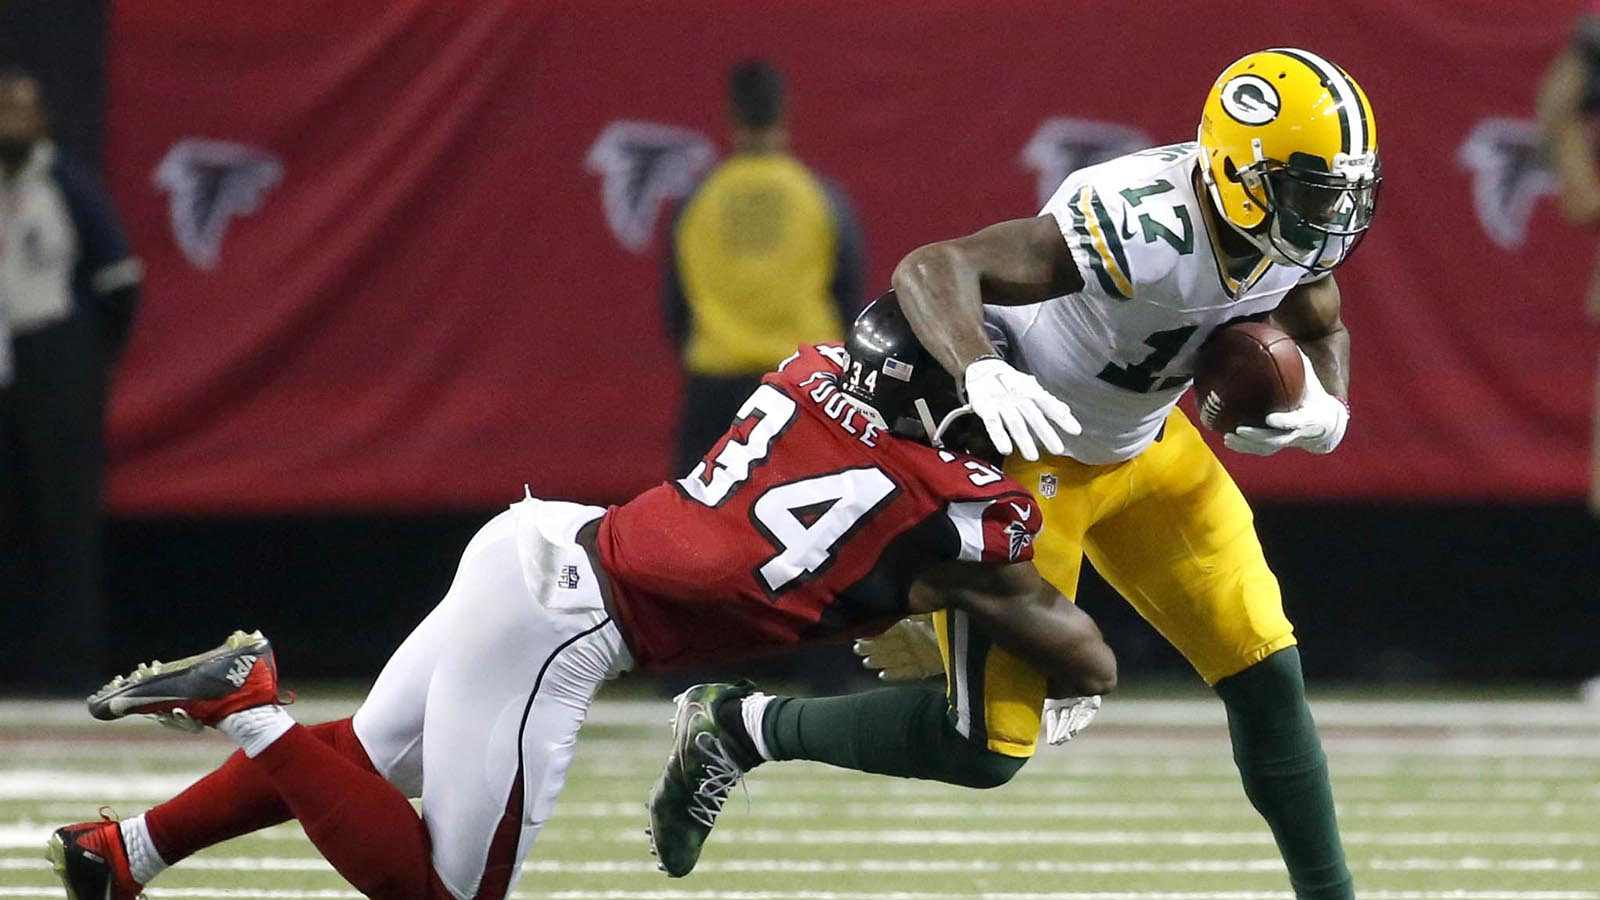 Packers' passing game takes step forward despite loss